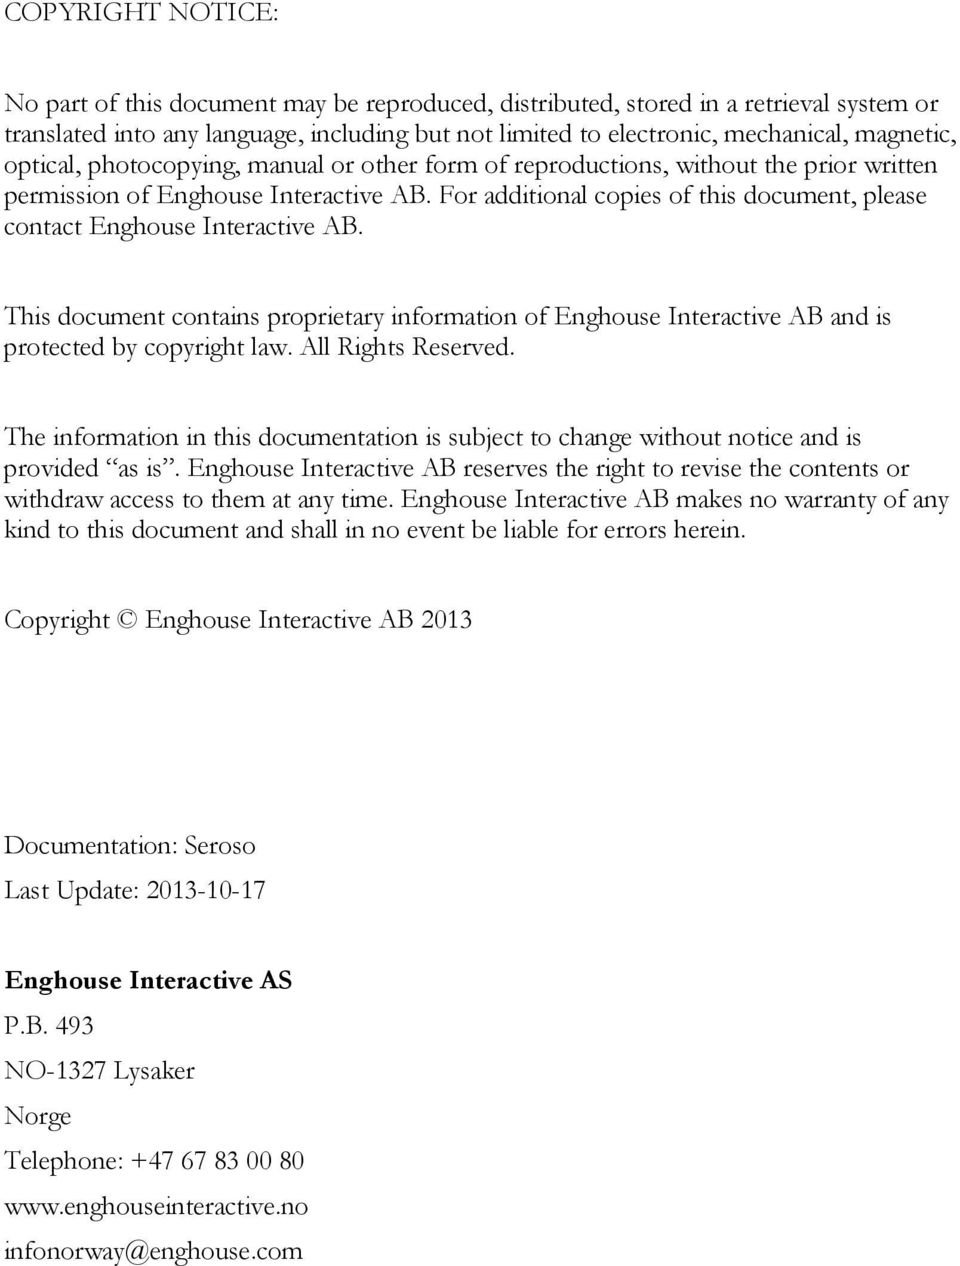 For additional copies of this document, please contact Enghouse Interactive AB. This document contains proprietary information of Enghouse Interactive AB and is protected by copyright law.